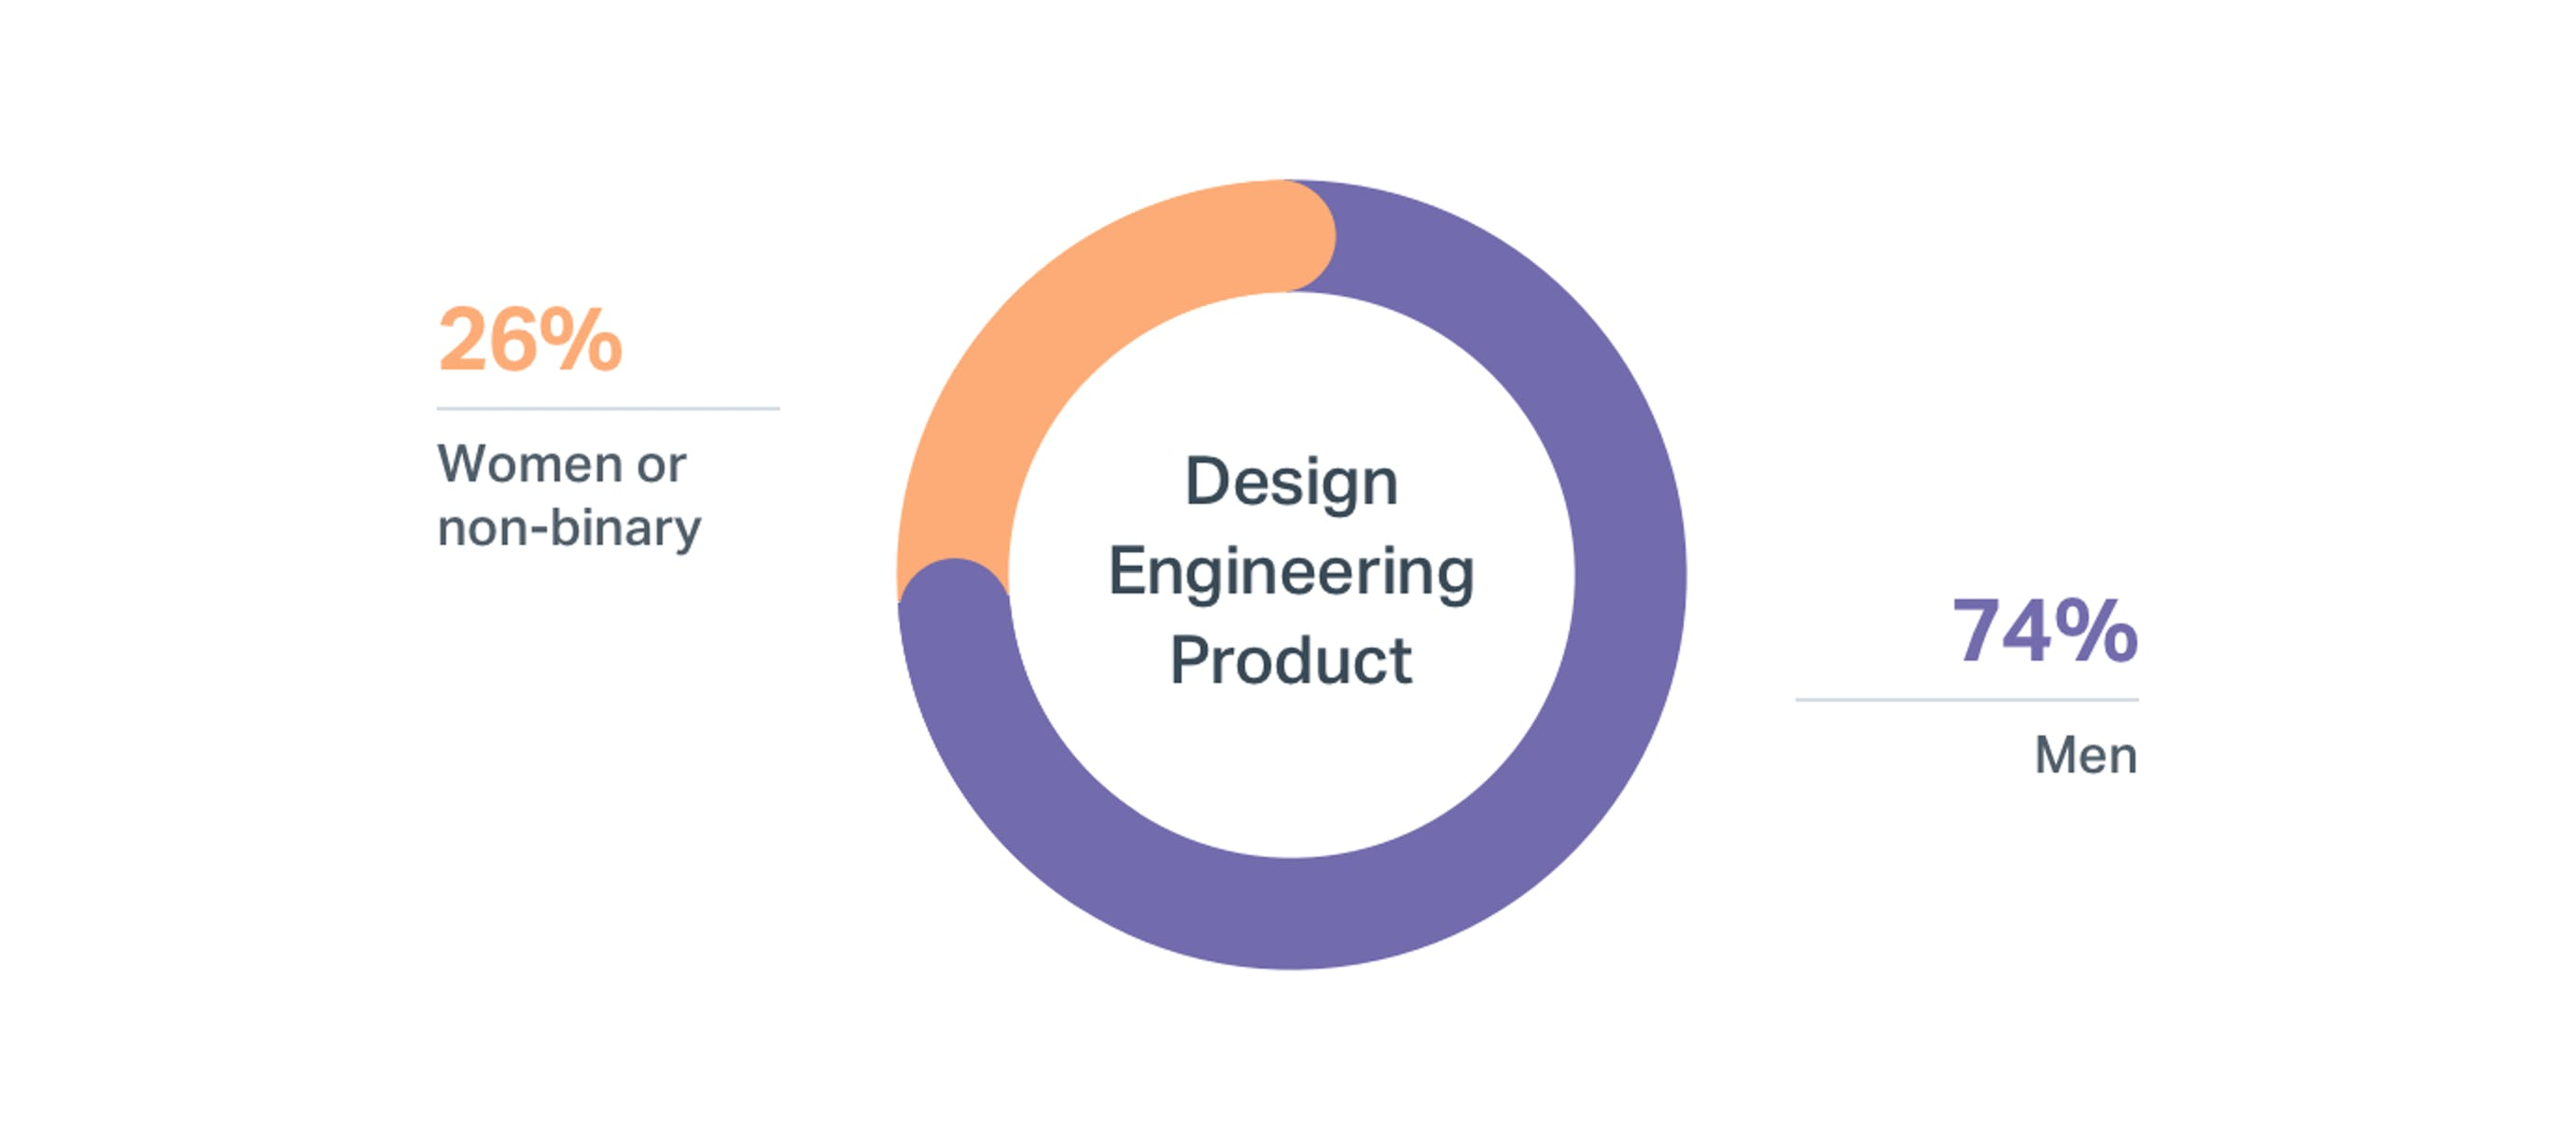 DI wins at Help Scout: Engineering-Design-Product - 2018